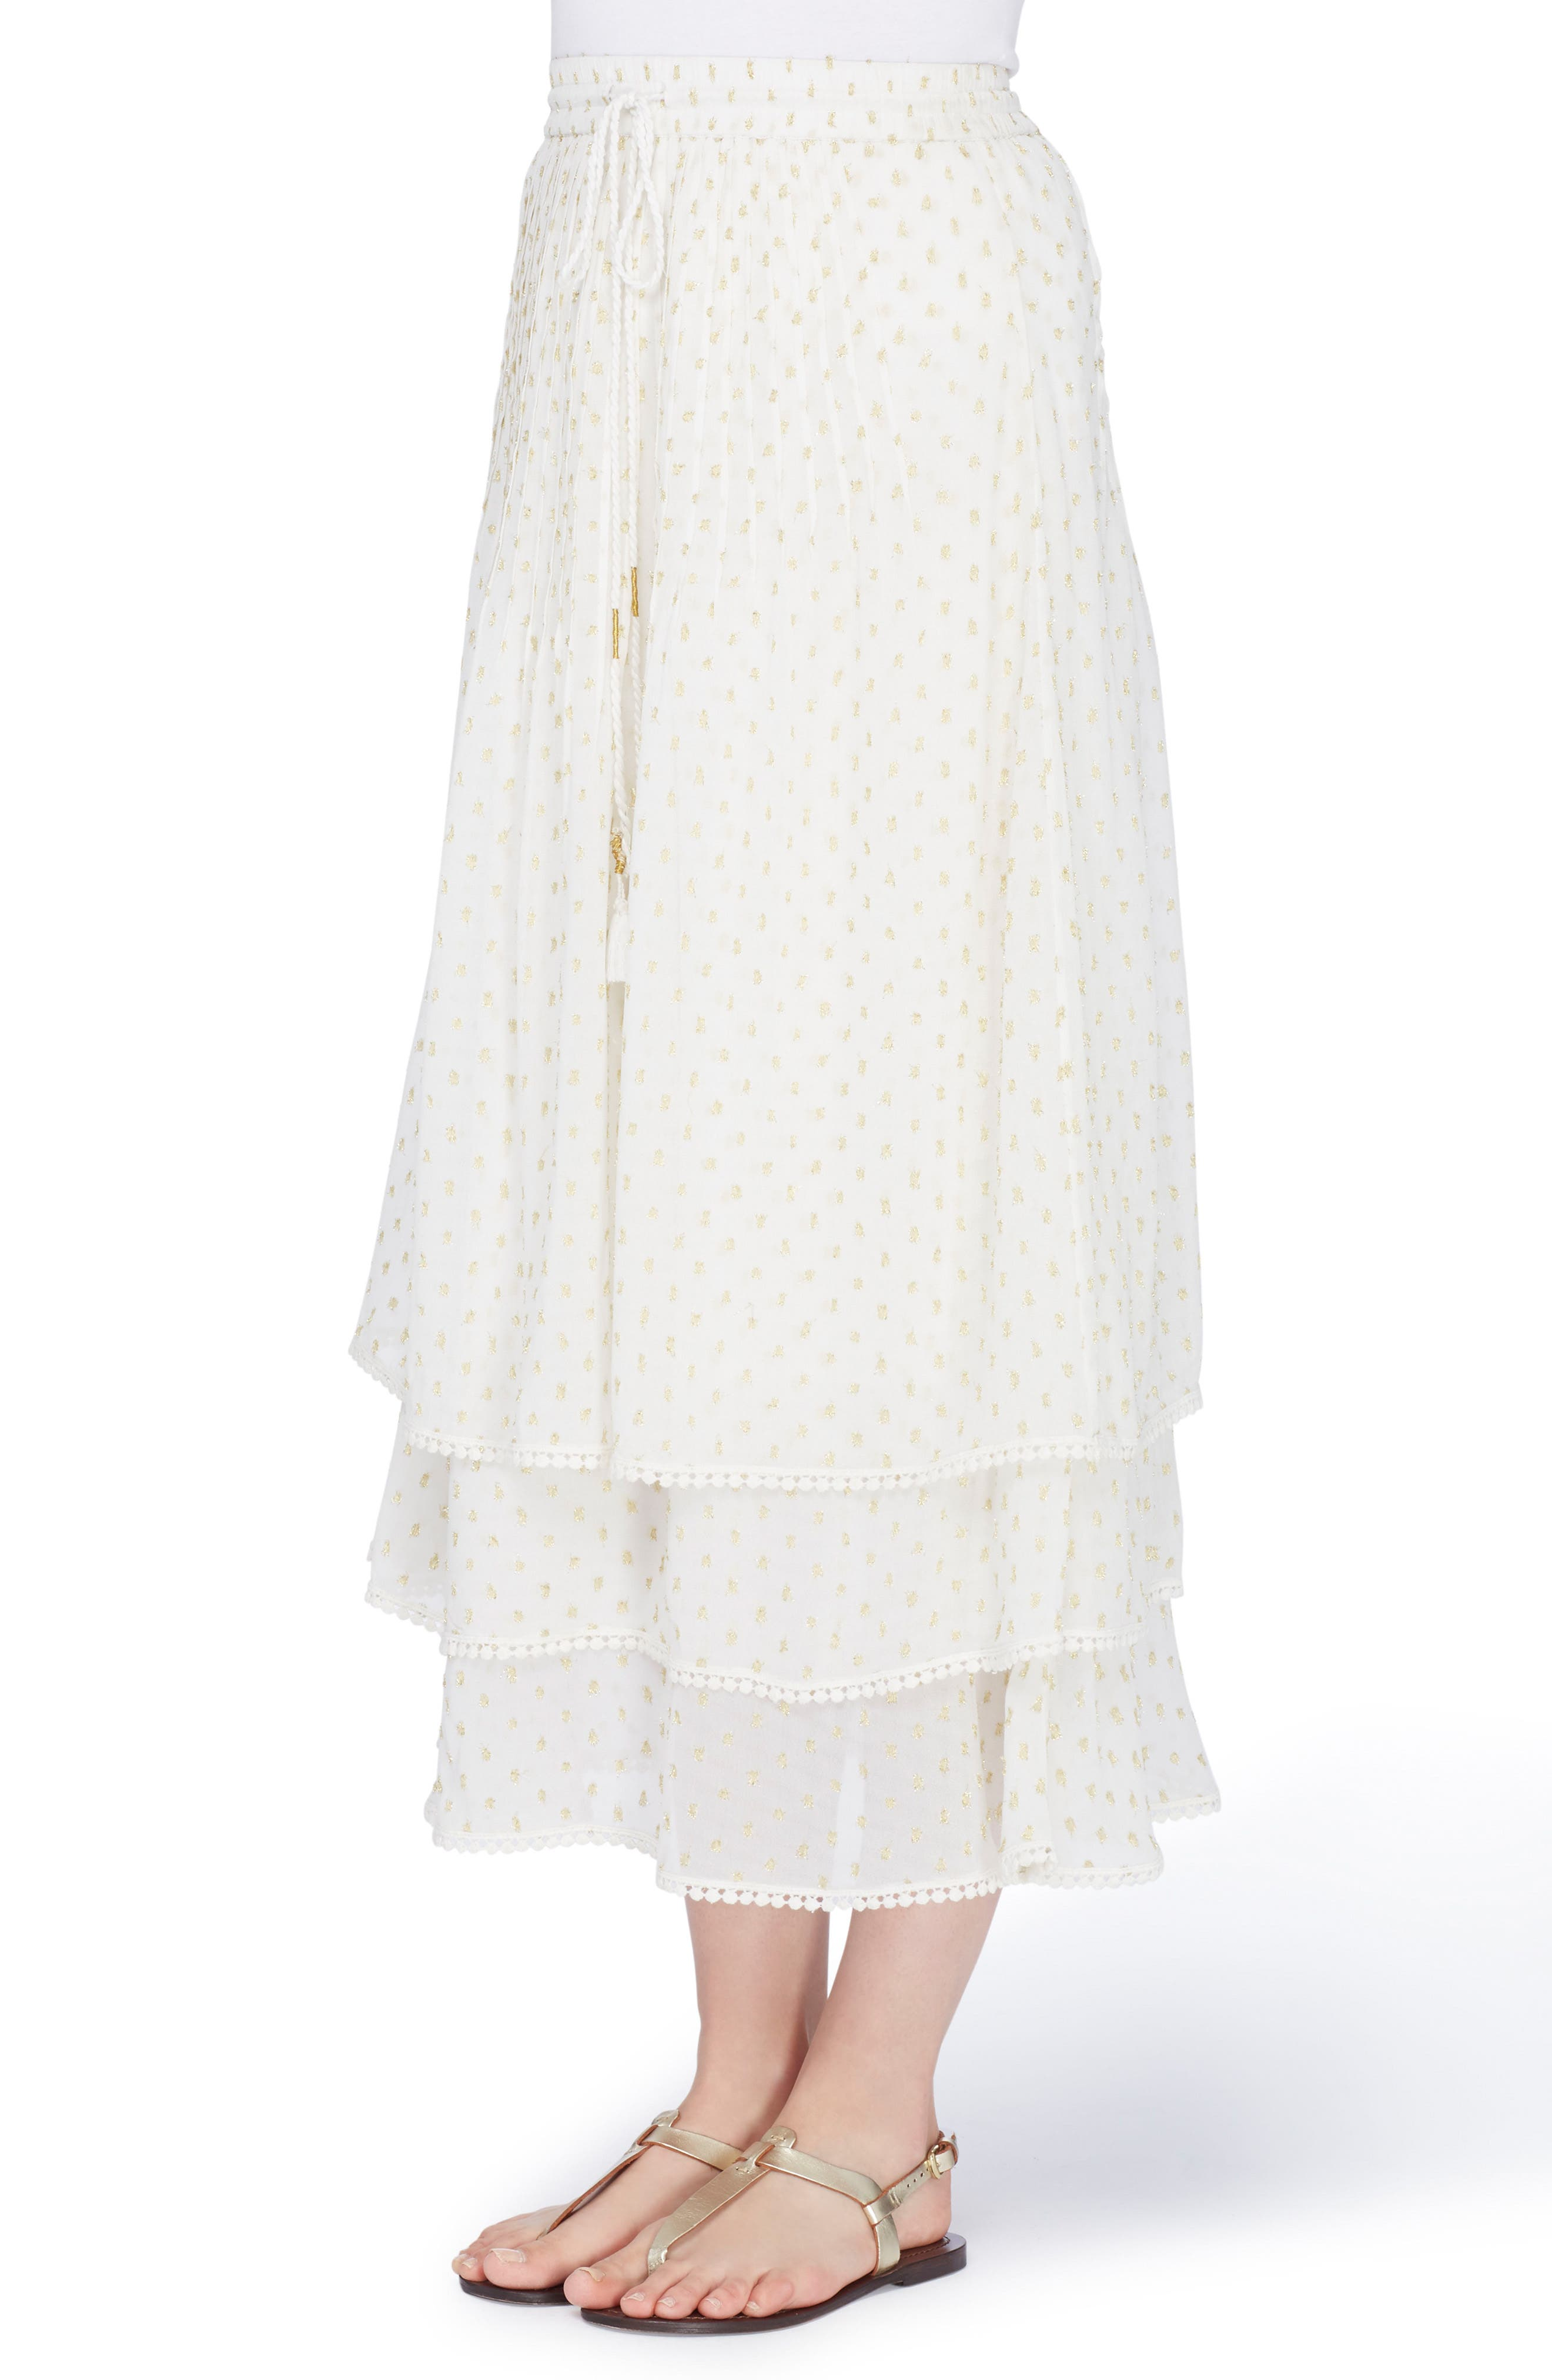 Berbas Clipped Jacquard Tiered Skirt,                         Main,                         color, Off White/ Gold